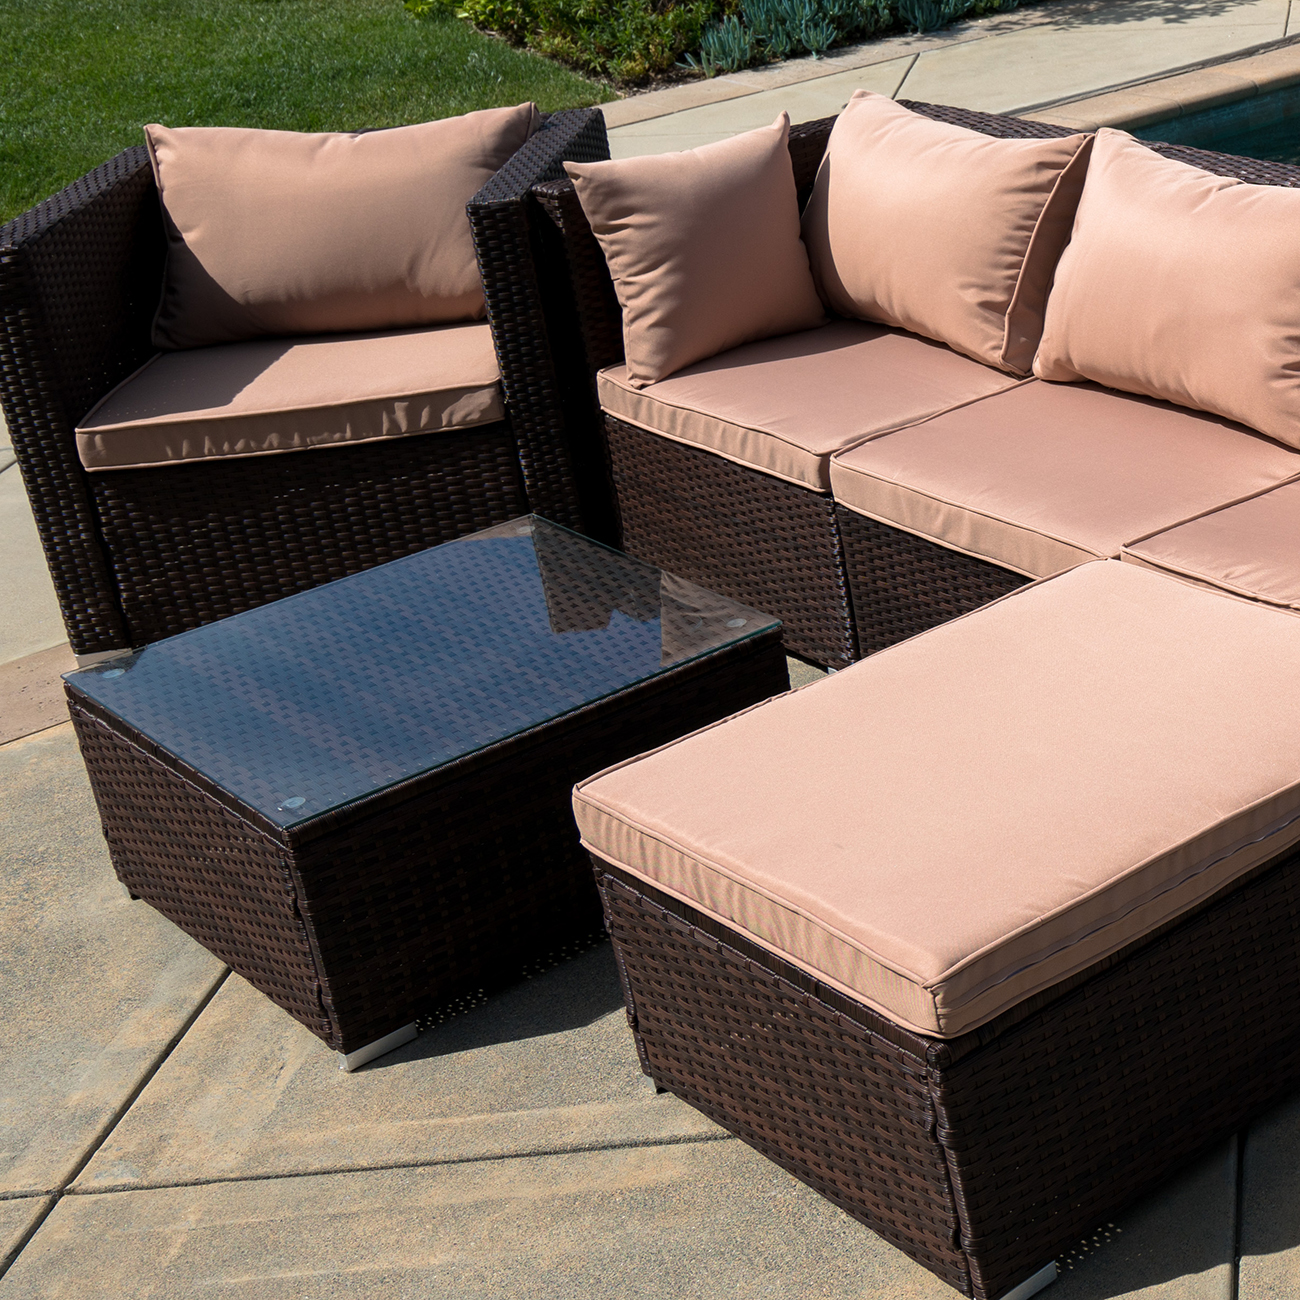 Rattan Garden Sofa Set Ebay 6pc Outdoor Patio Furniture Sectional Rattan Wicker Sofa